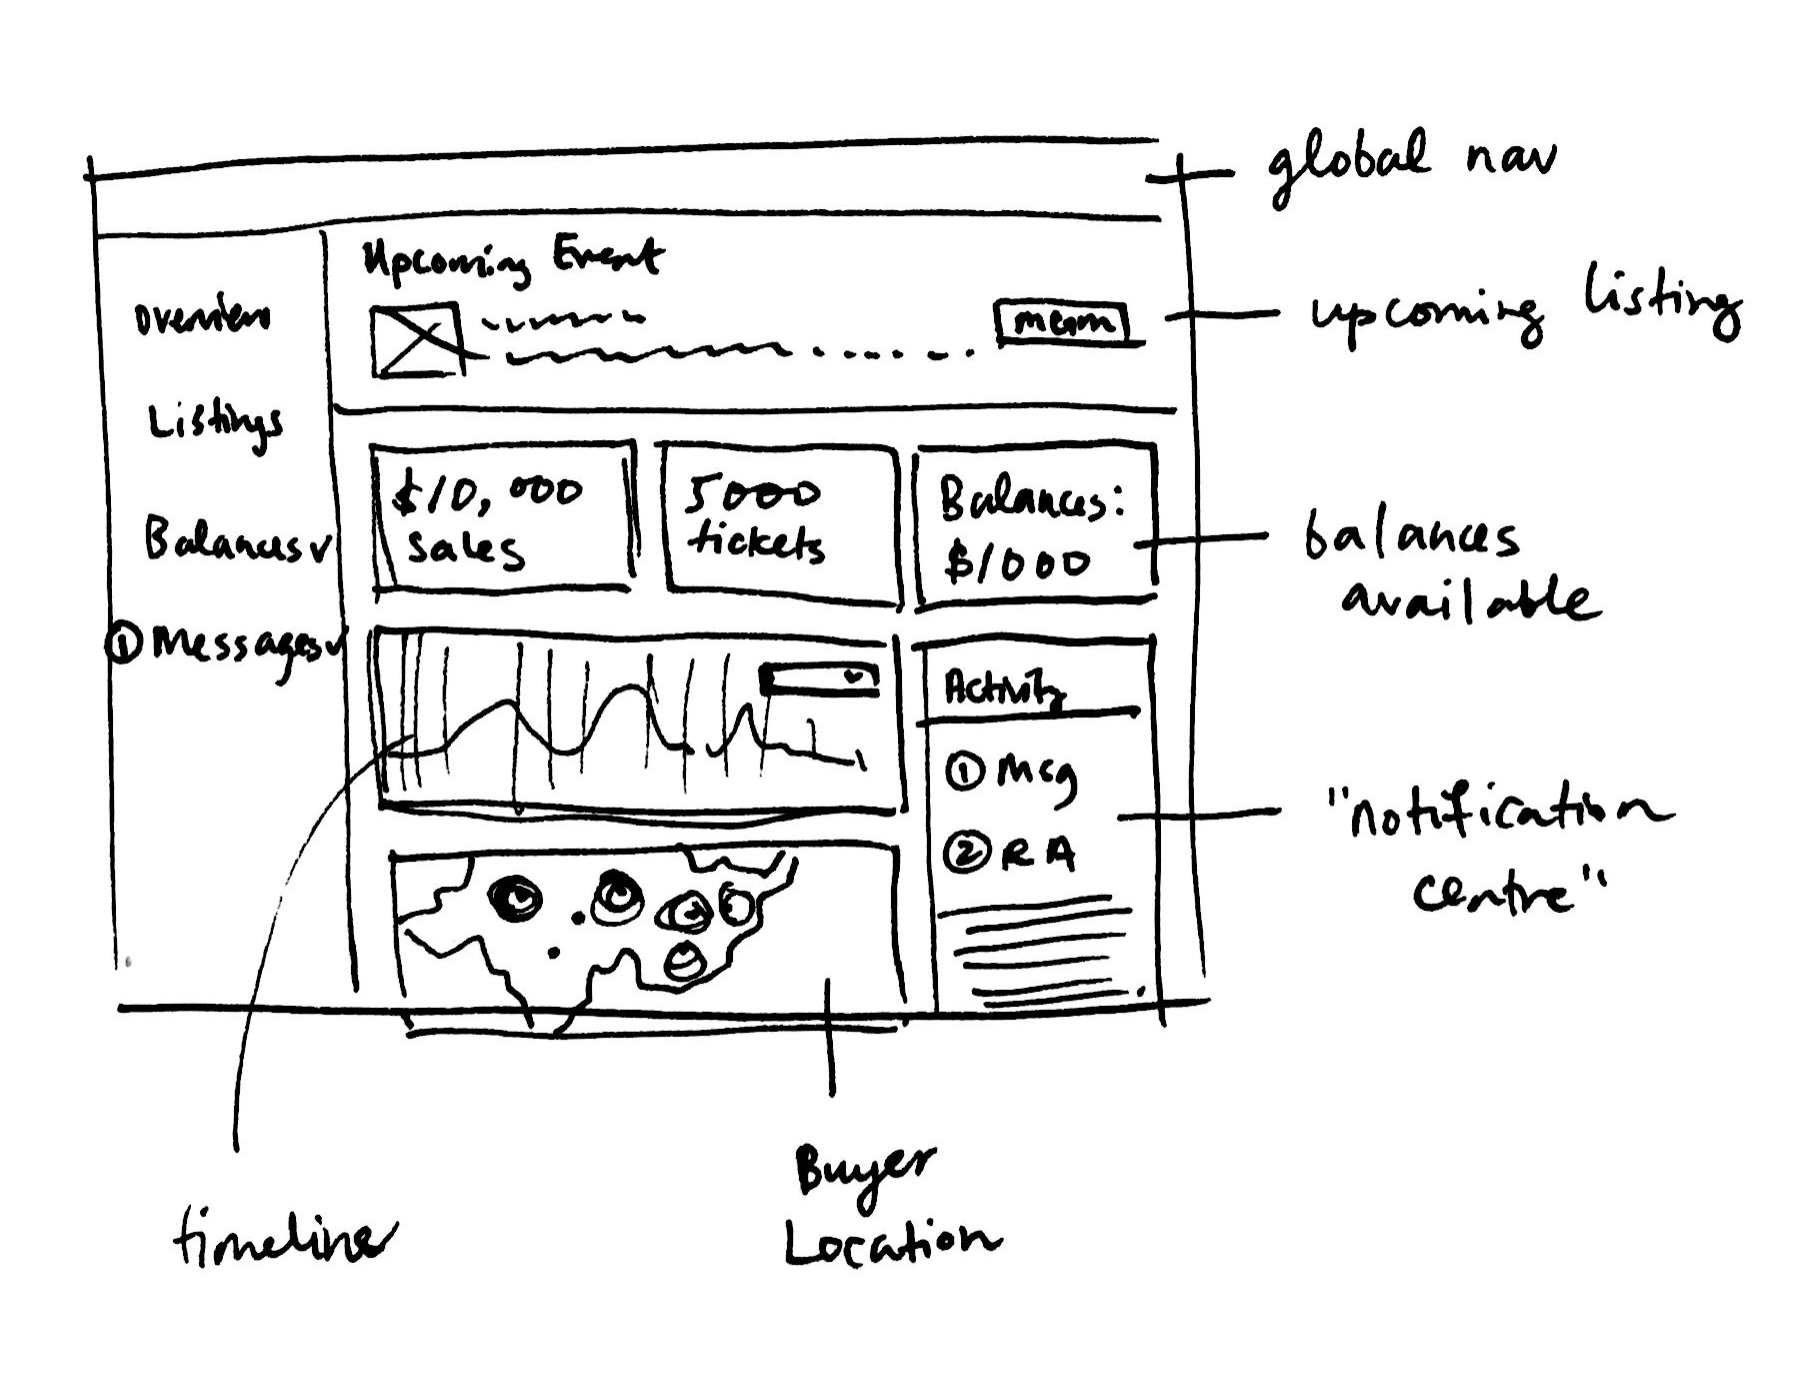 A sketch of a dashboard idea.